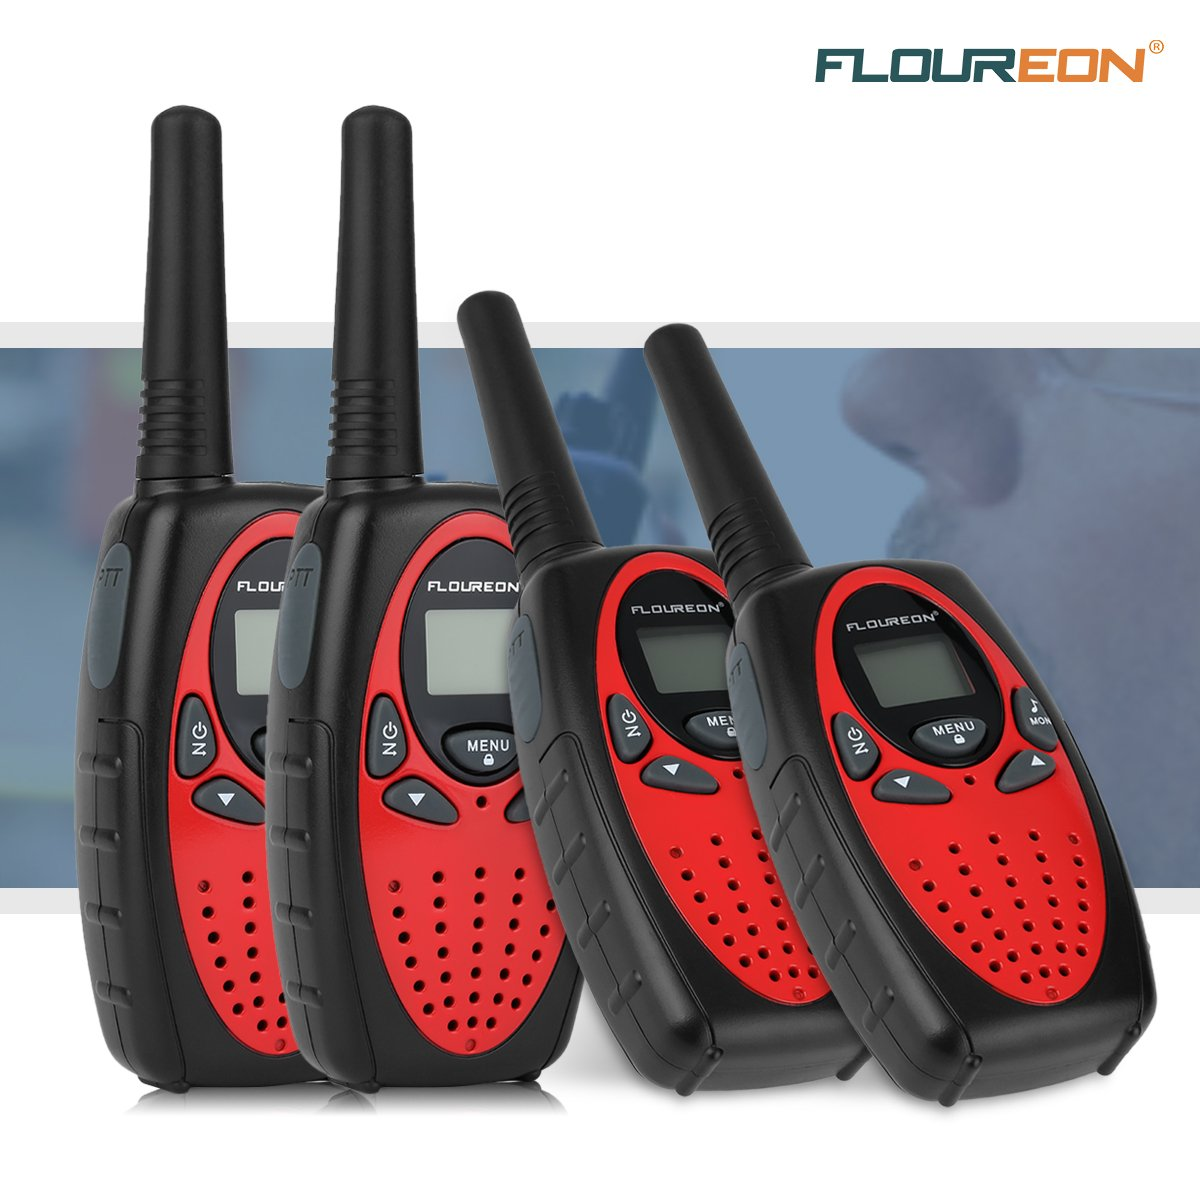 Floureon 4 Packs 22-Channel FRS/GMRS Two Way Radios Up to 3000M/1.9MI Range (MAX 5000M/3.1MI) Handheld Walkie Talkies for Outdoor Adventure (Red) by floureon (Image #9)